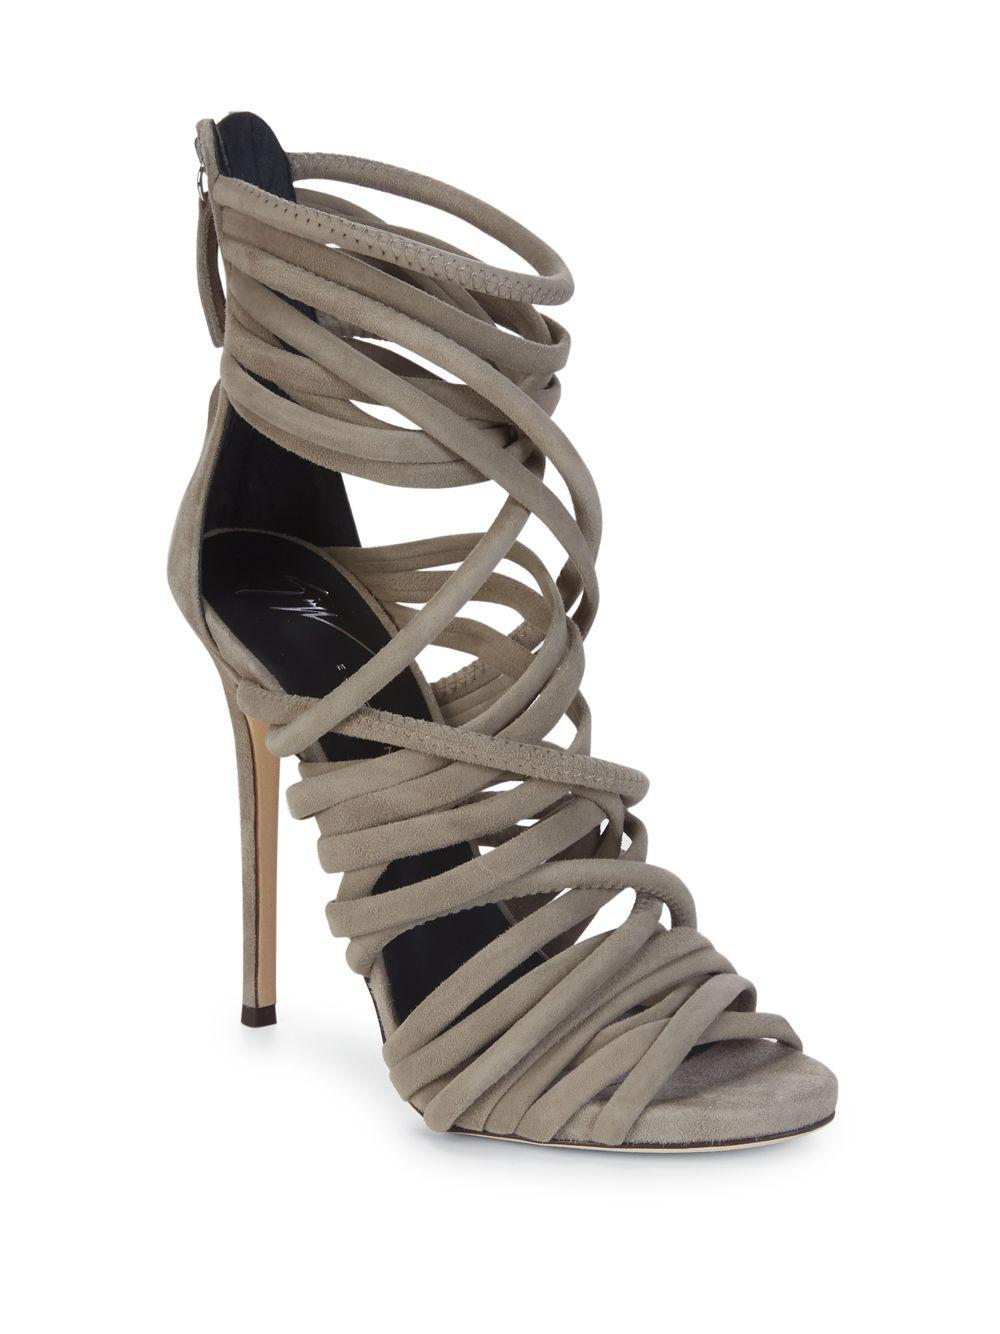 b65e055d3ae8 Lyst - Giuseppe Zanotti Alien Leather Strappy Sandals in Gray - Save 45%